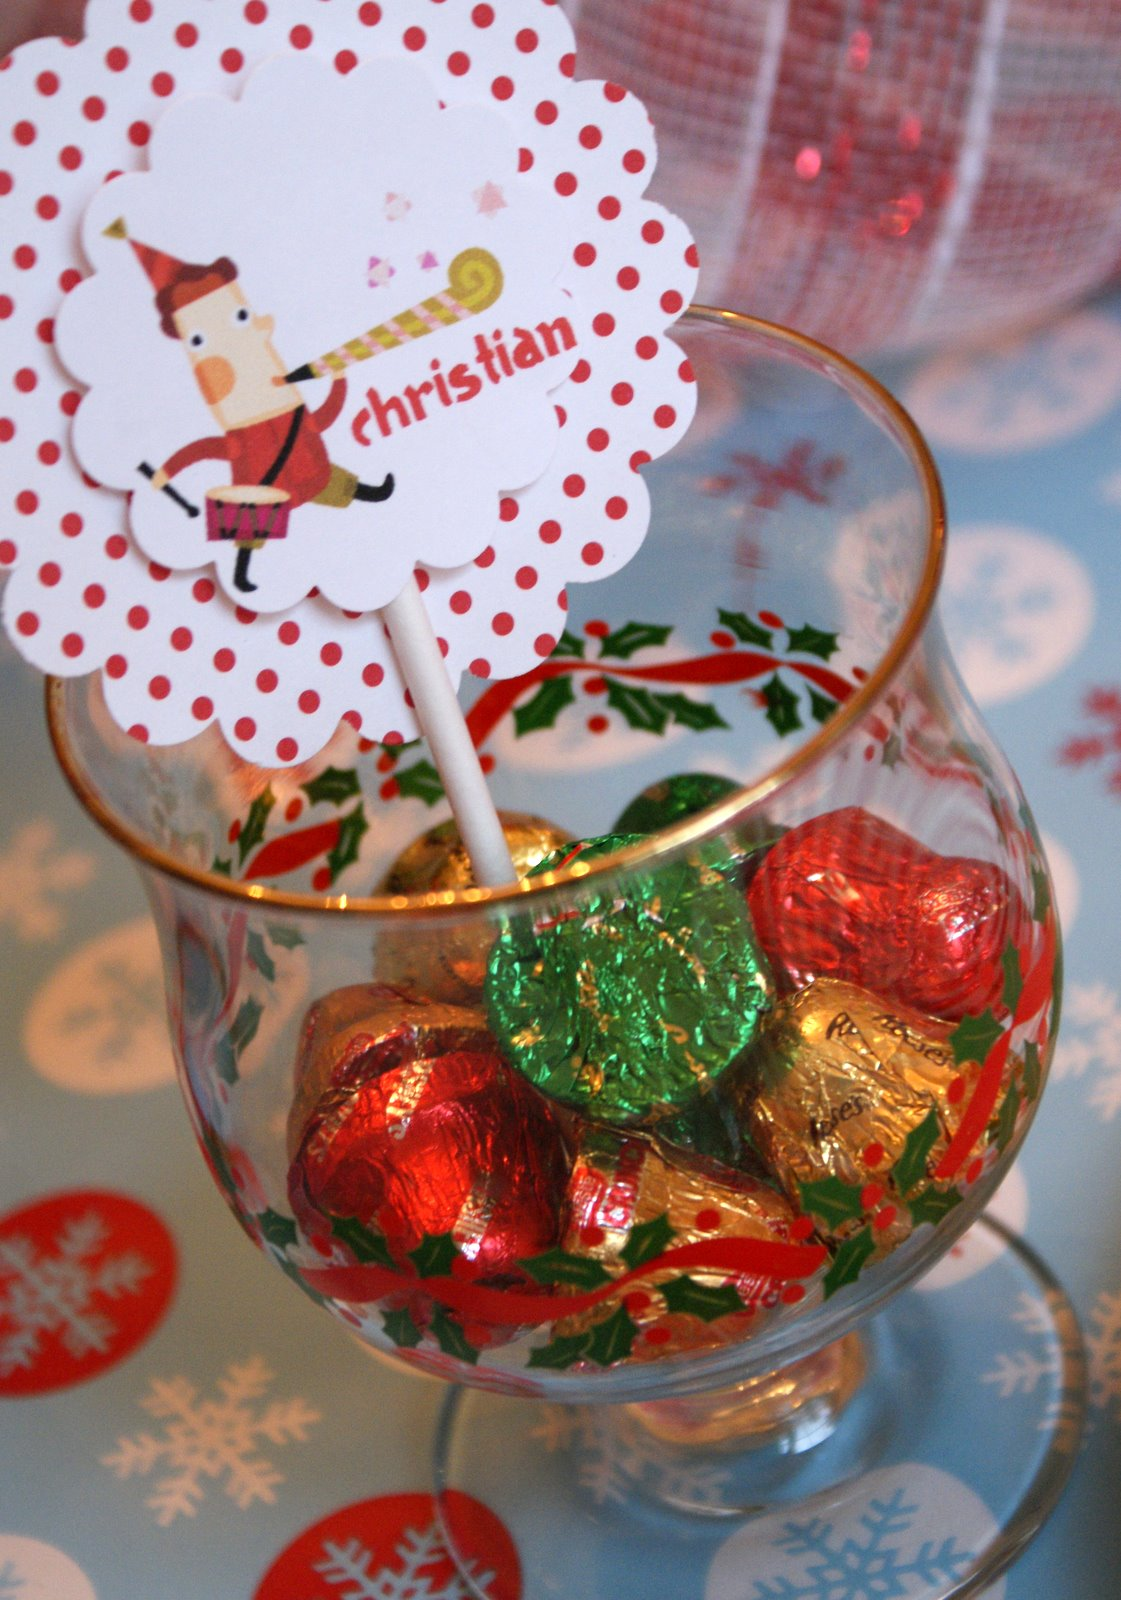 Kids christmas party decorations - Jingle Bell Rock Kids Christmas Party